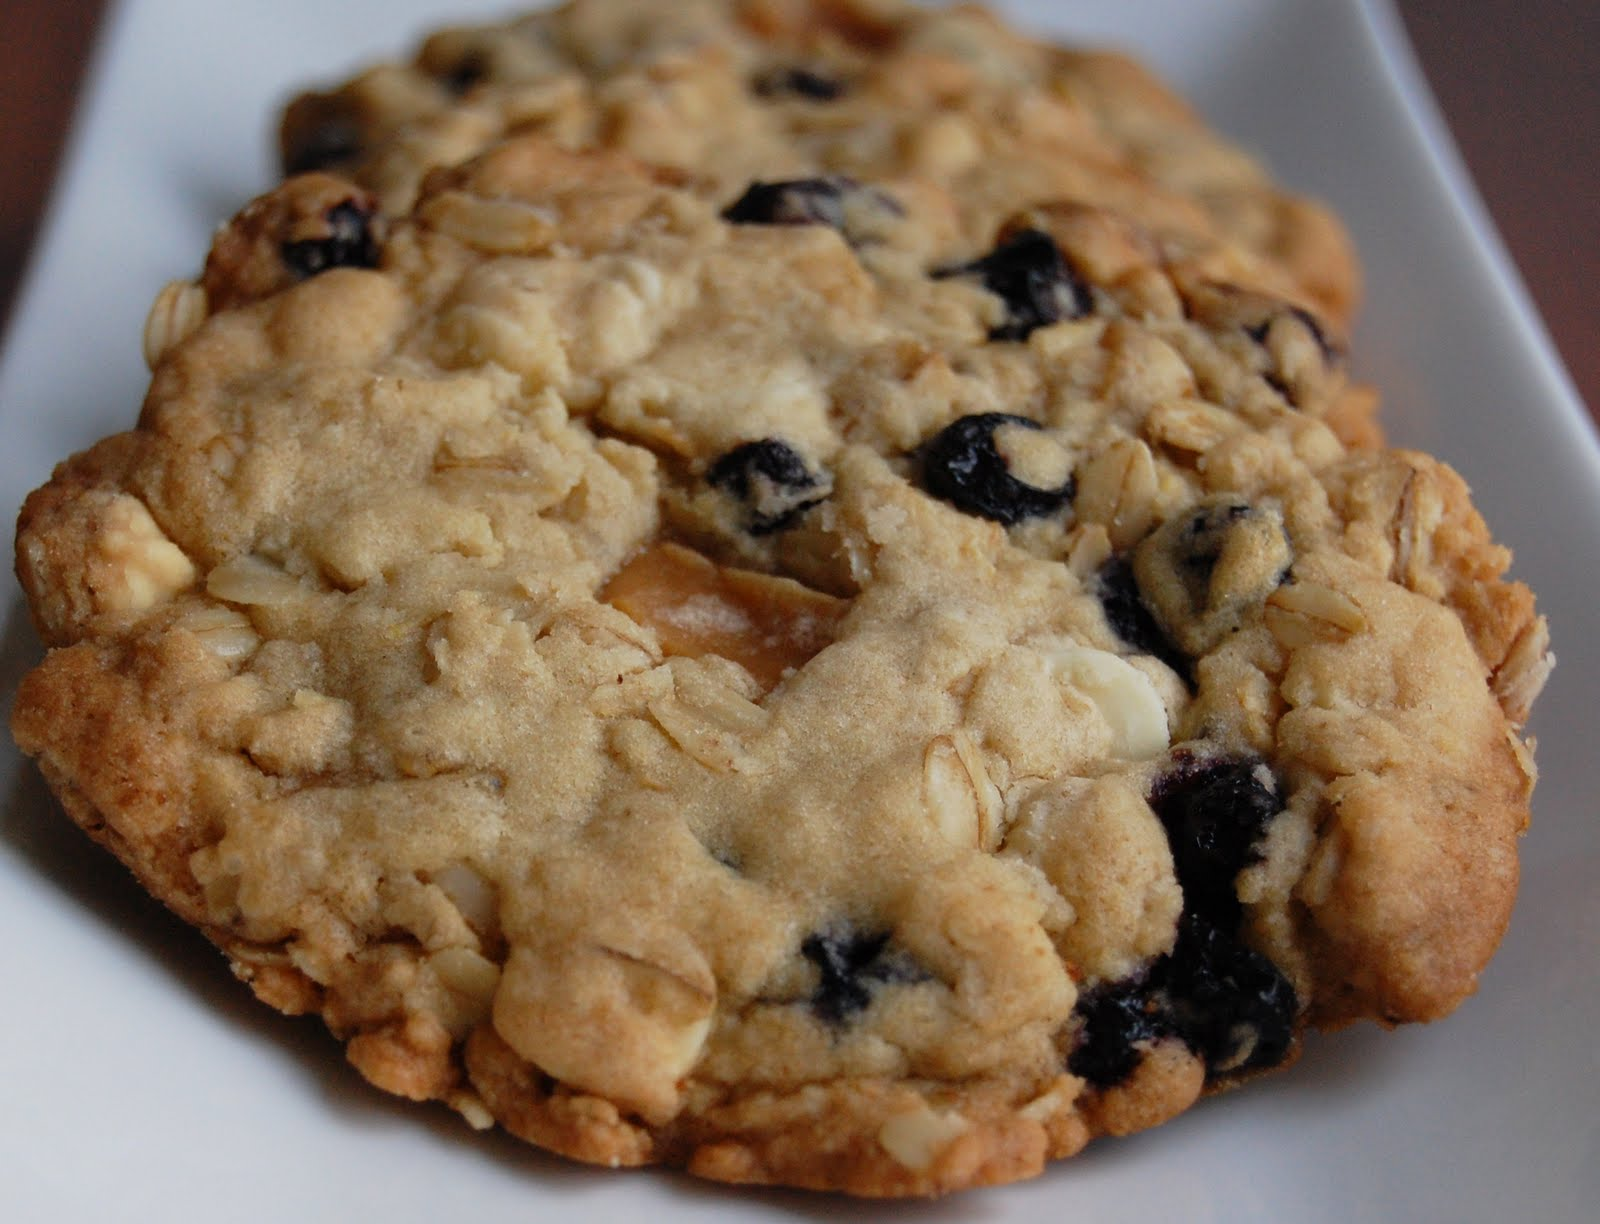 ... Baker Too: Blueberry, Caramel and White Chocolate Oatmeal Cookies